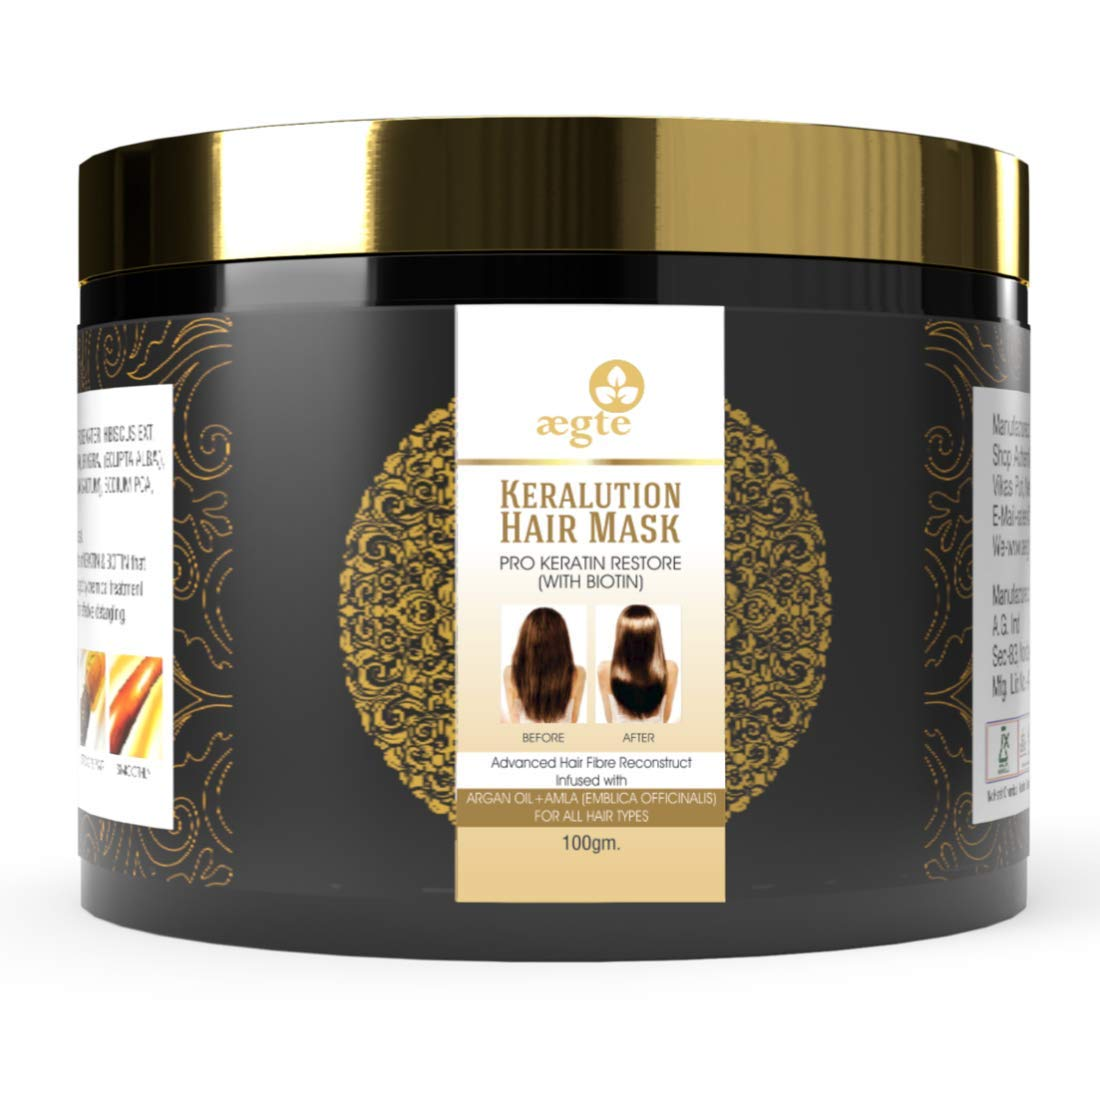 Aegte Keralution Hair Mask Infused with KERATIN